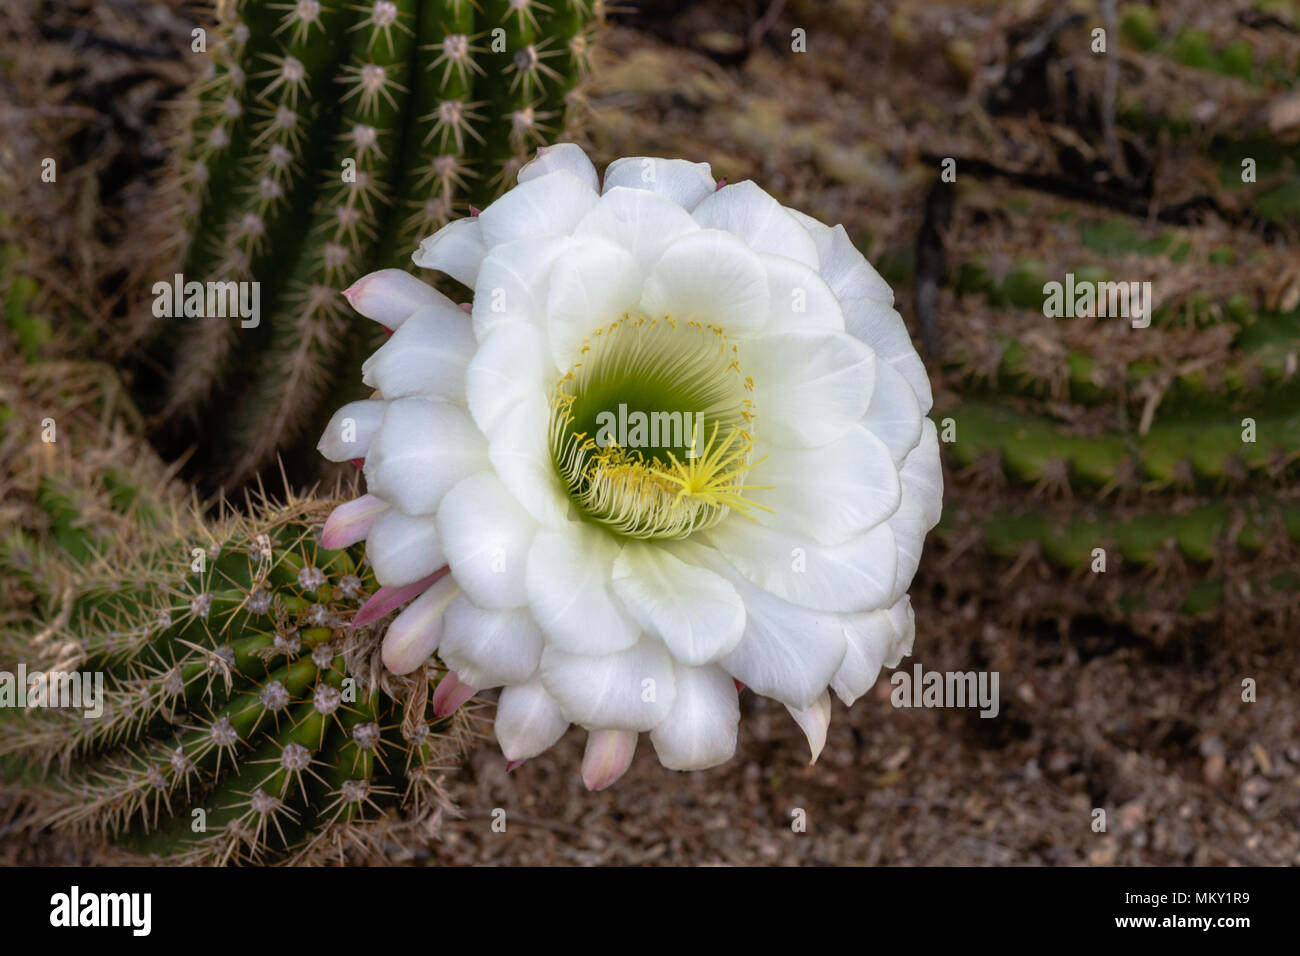 Large White Cactus Flower Stock Photos Large White Cactus Flower